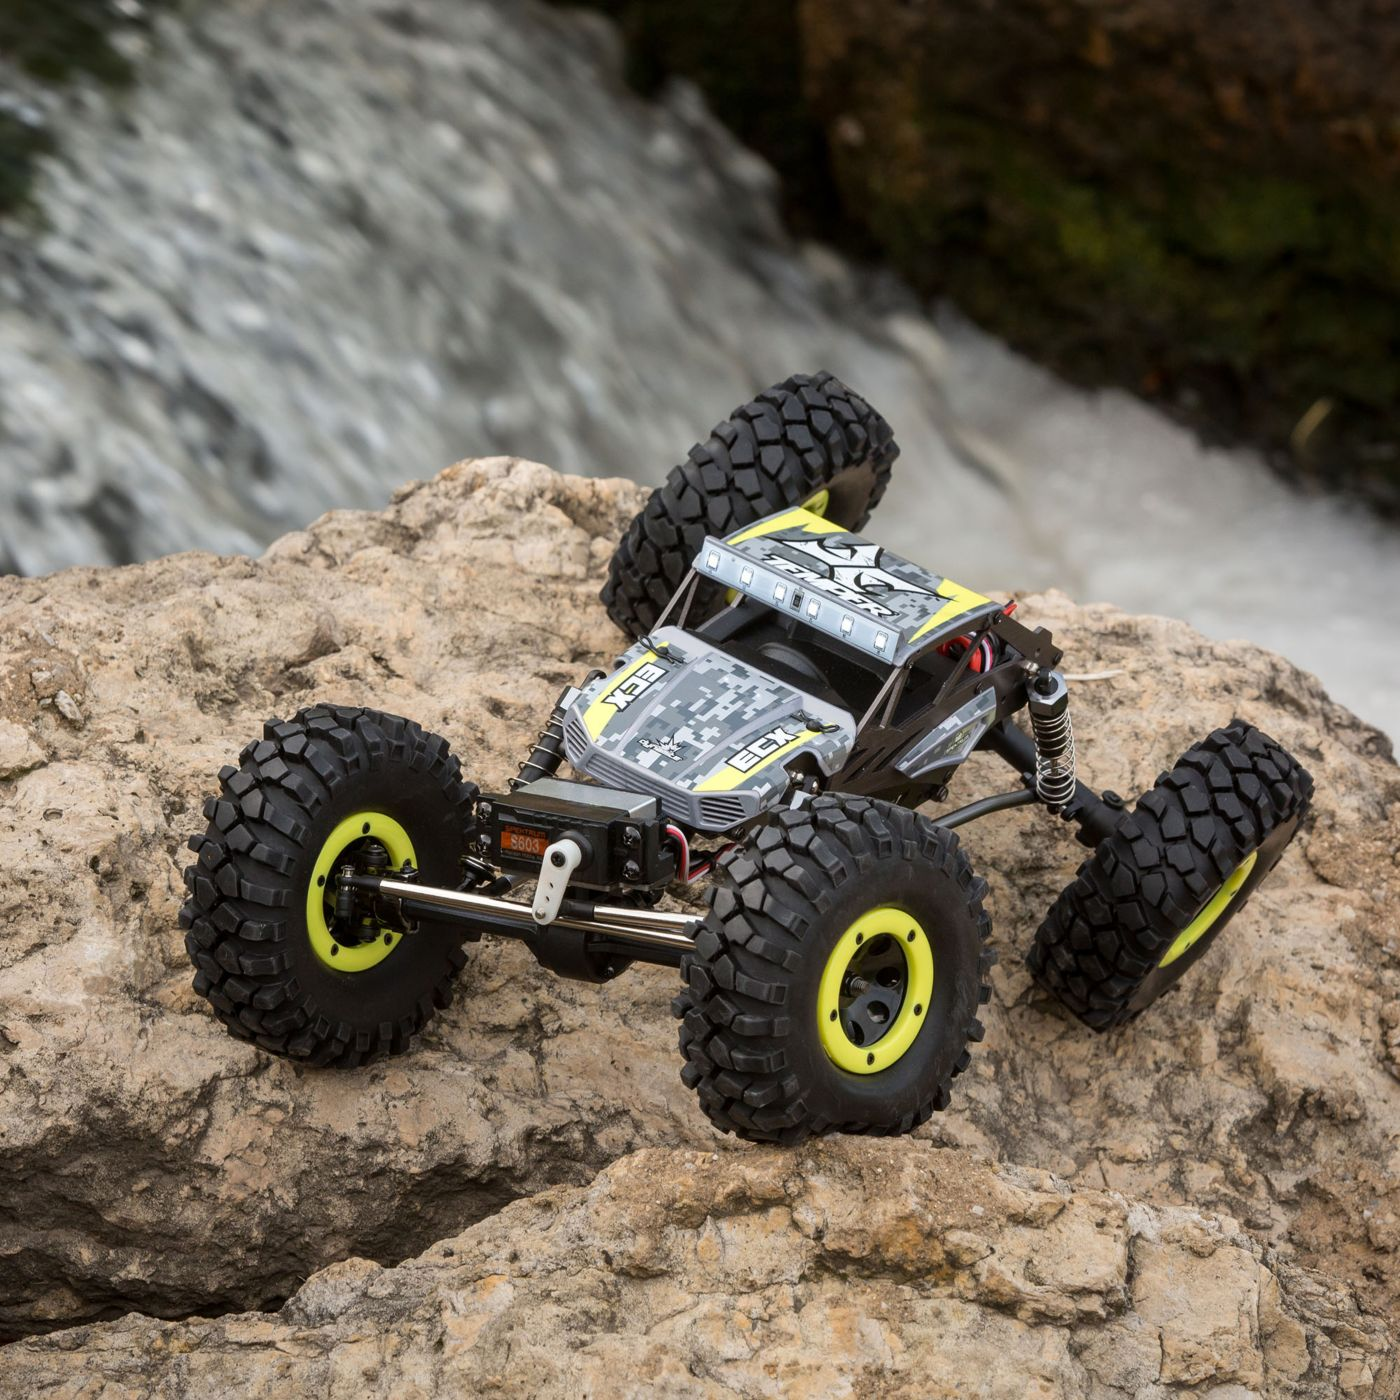 ECX Temper 1-18 GEN2 RC Crawler - On The Rocks